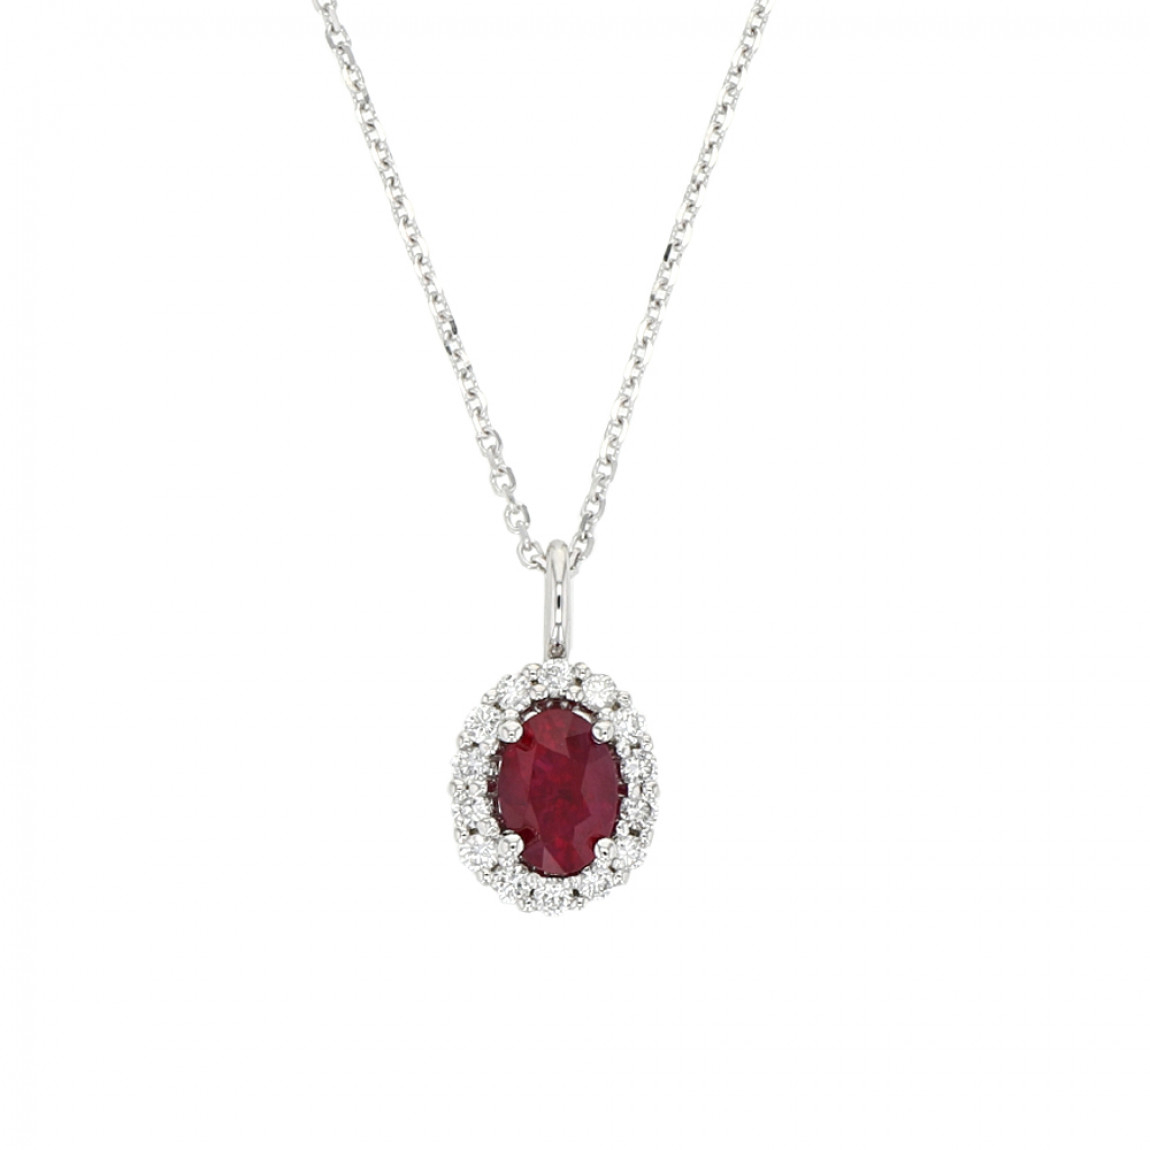 Ruby And Diamond Halo Pendant, Oval, 14K White Gold, 1.01Ct Ruby,  (View 20 of 25)